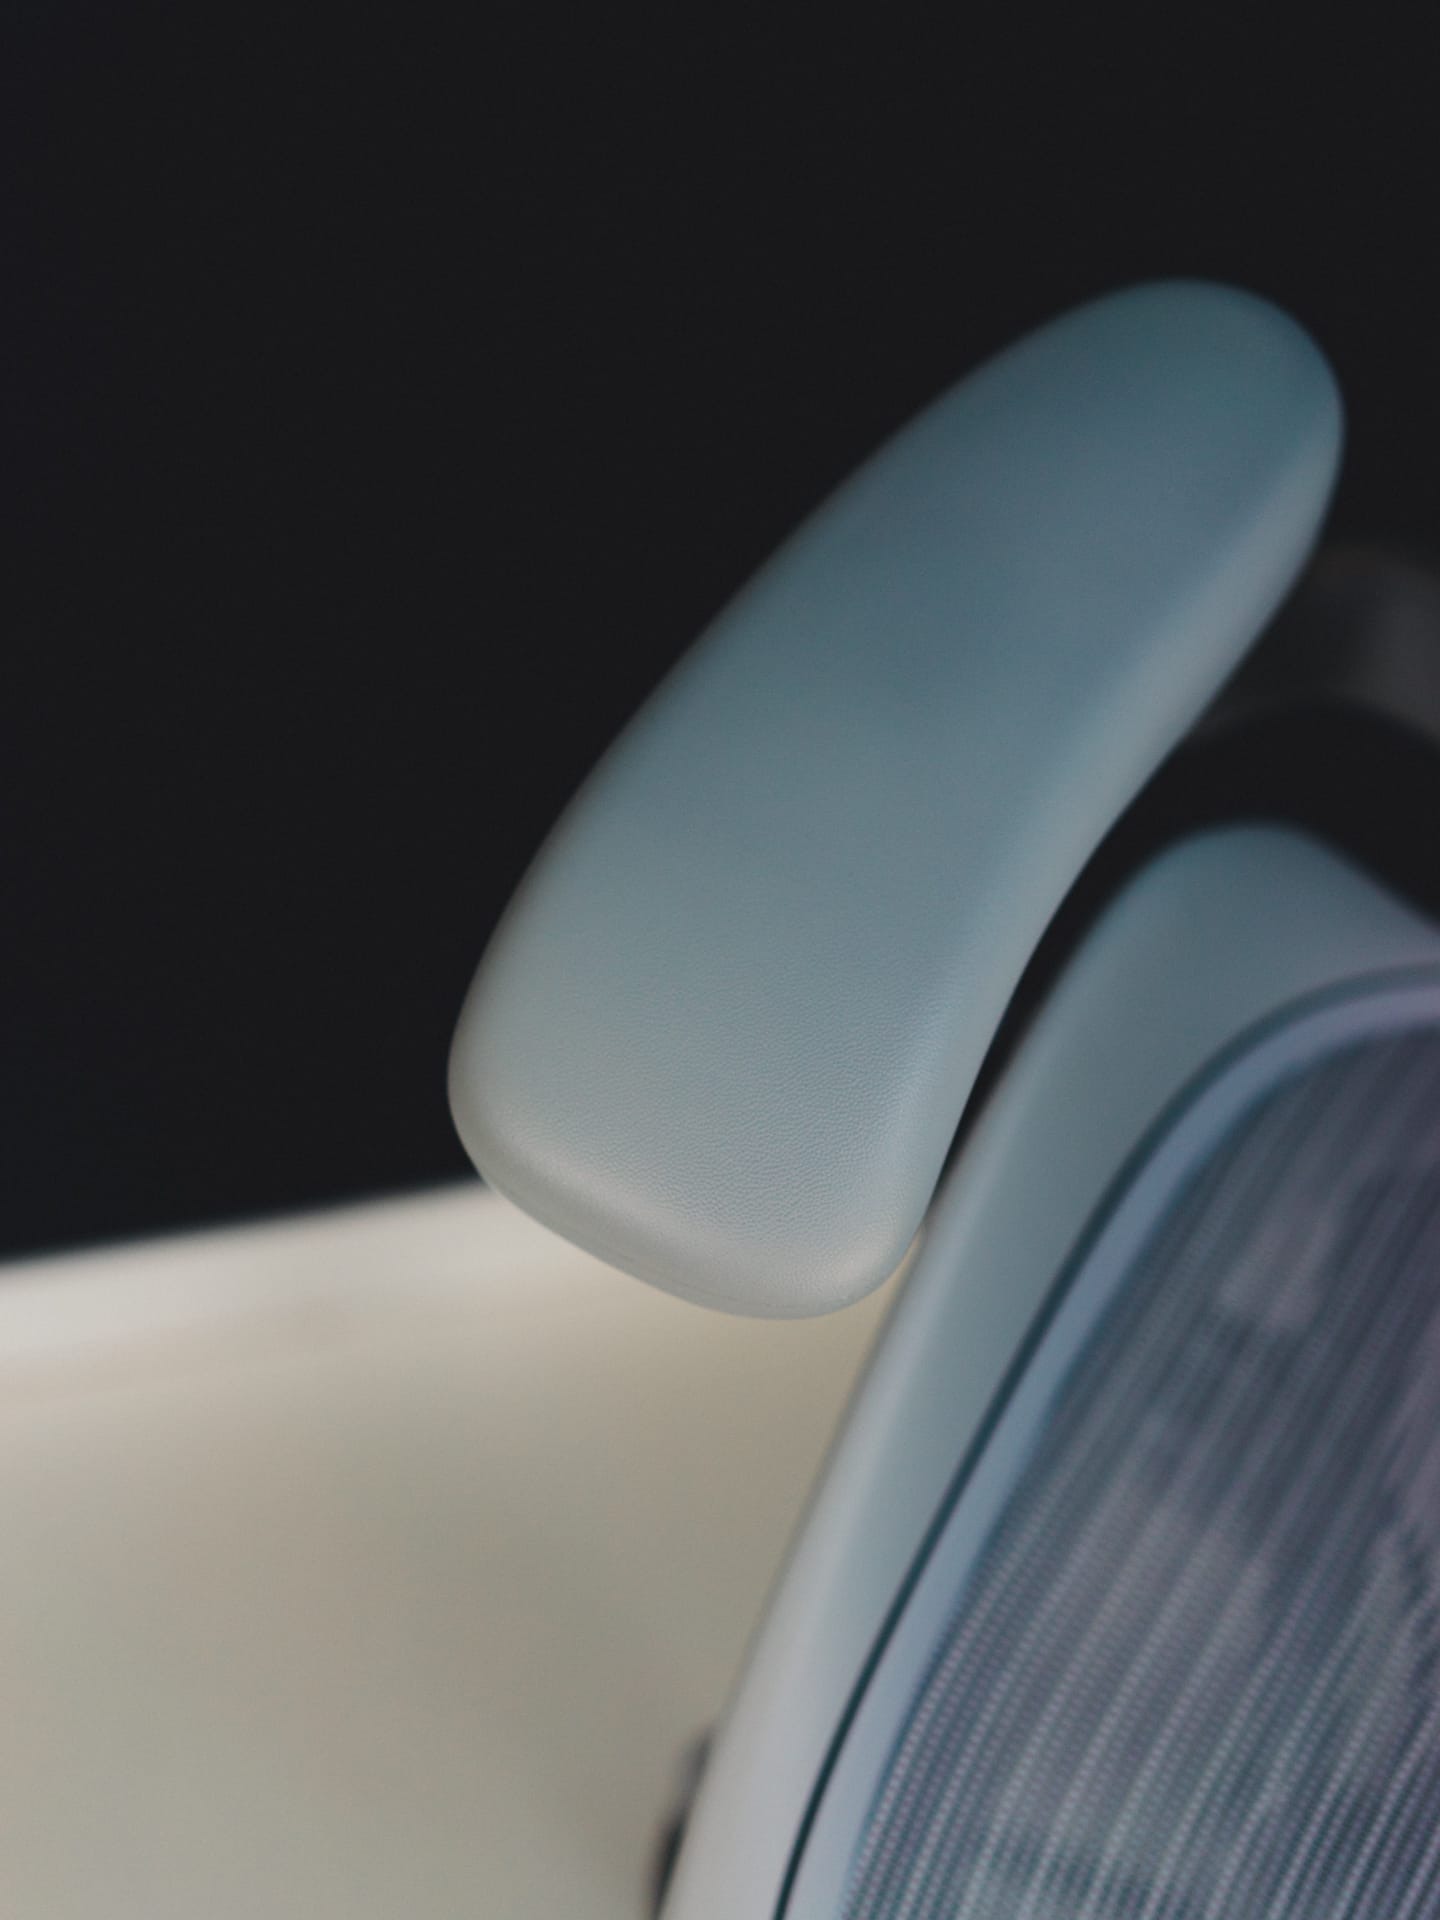 aeron chair review 2017 back pillow for office philippines a of the remastered herman miller